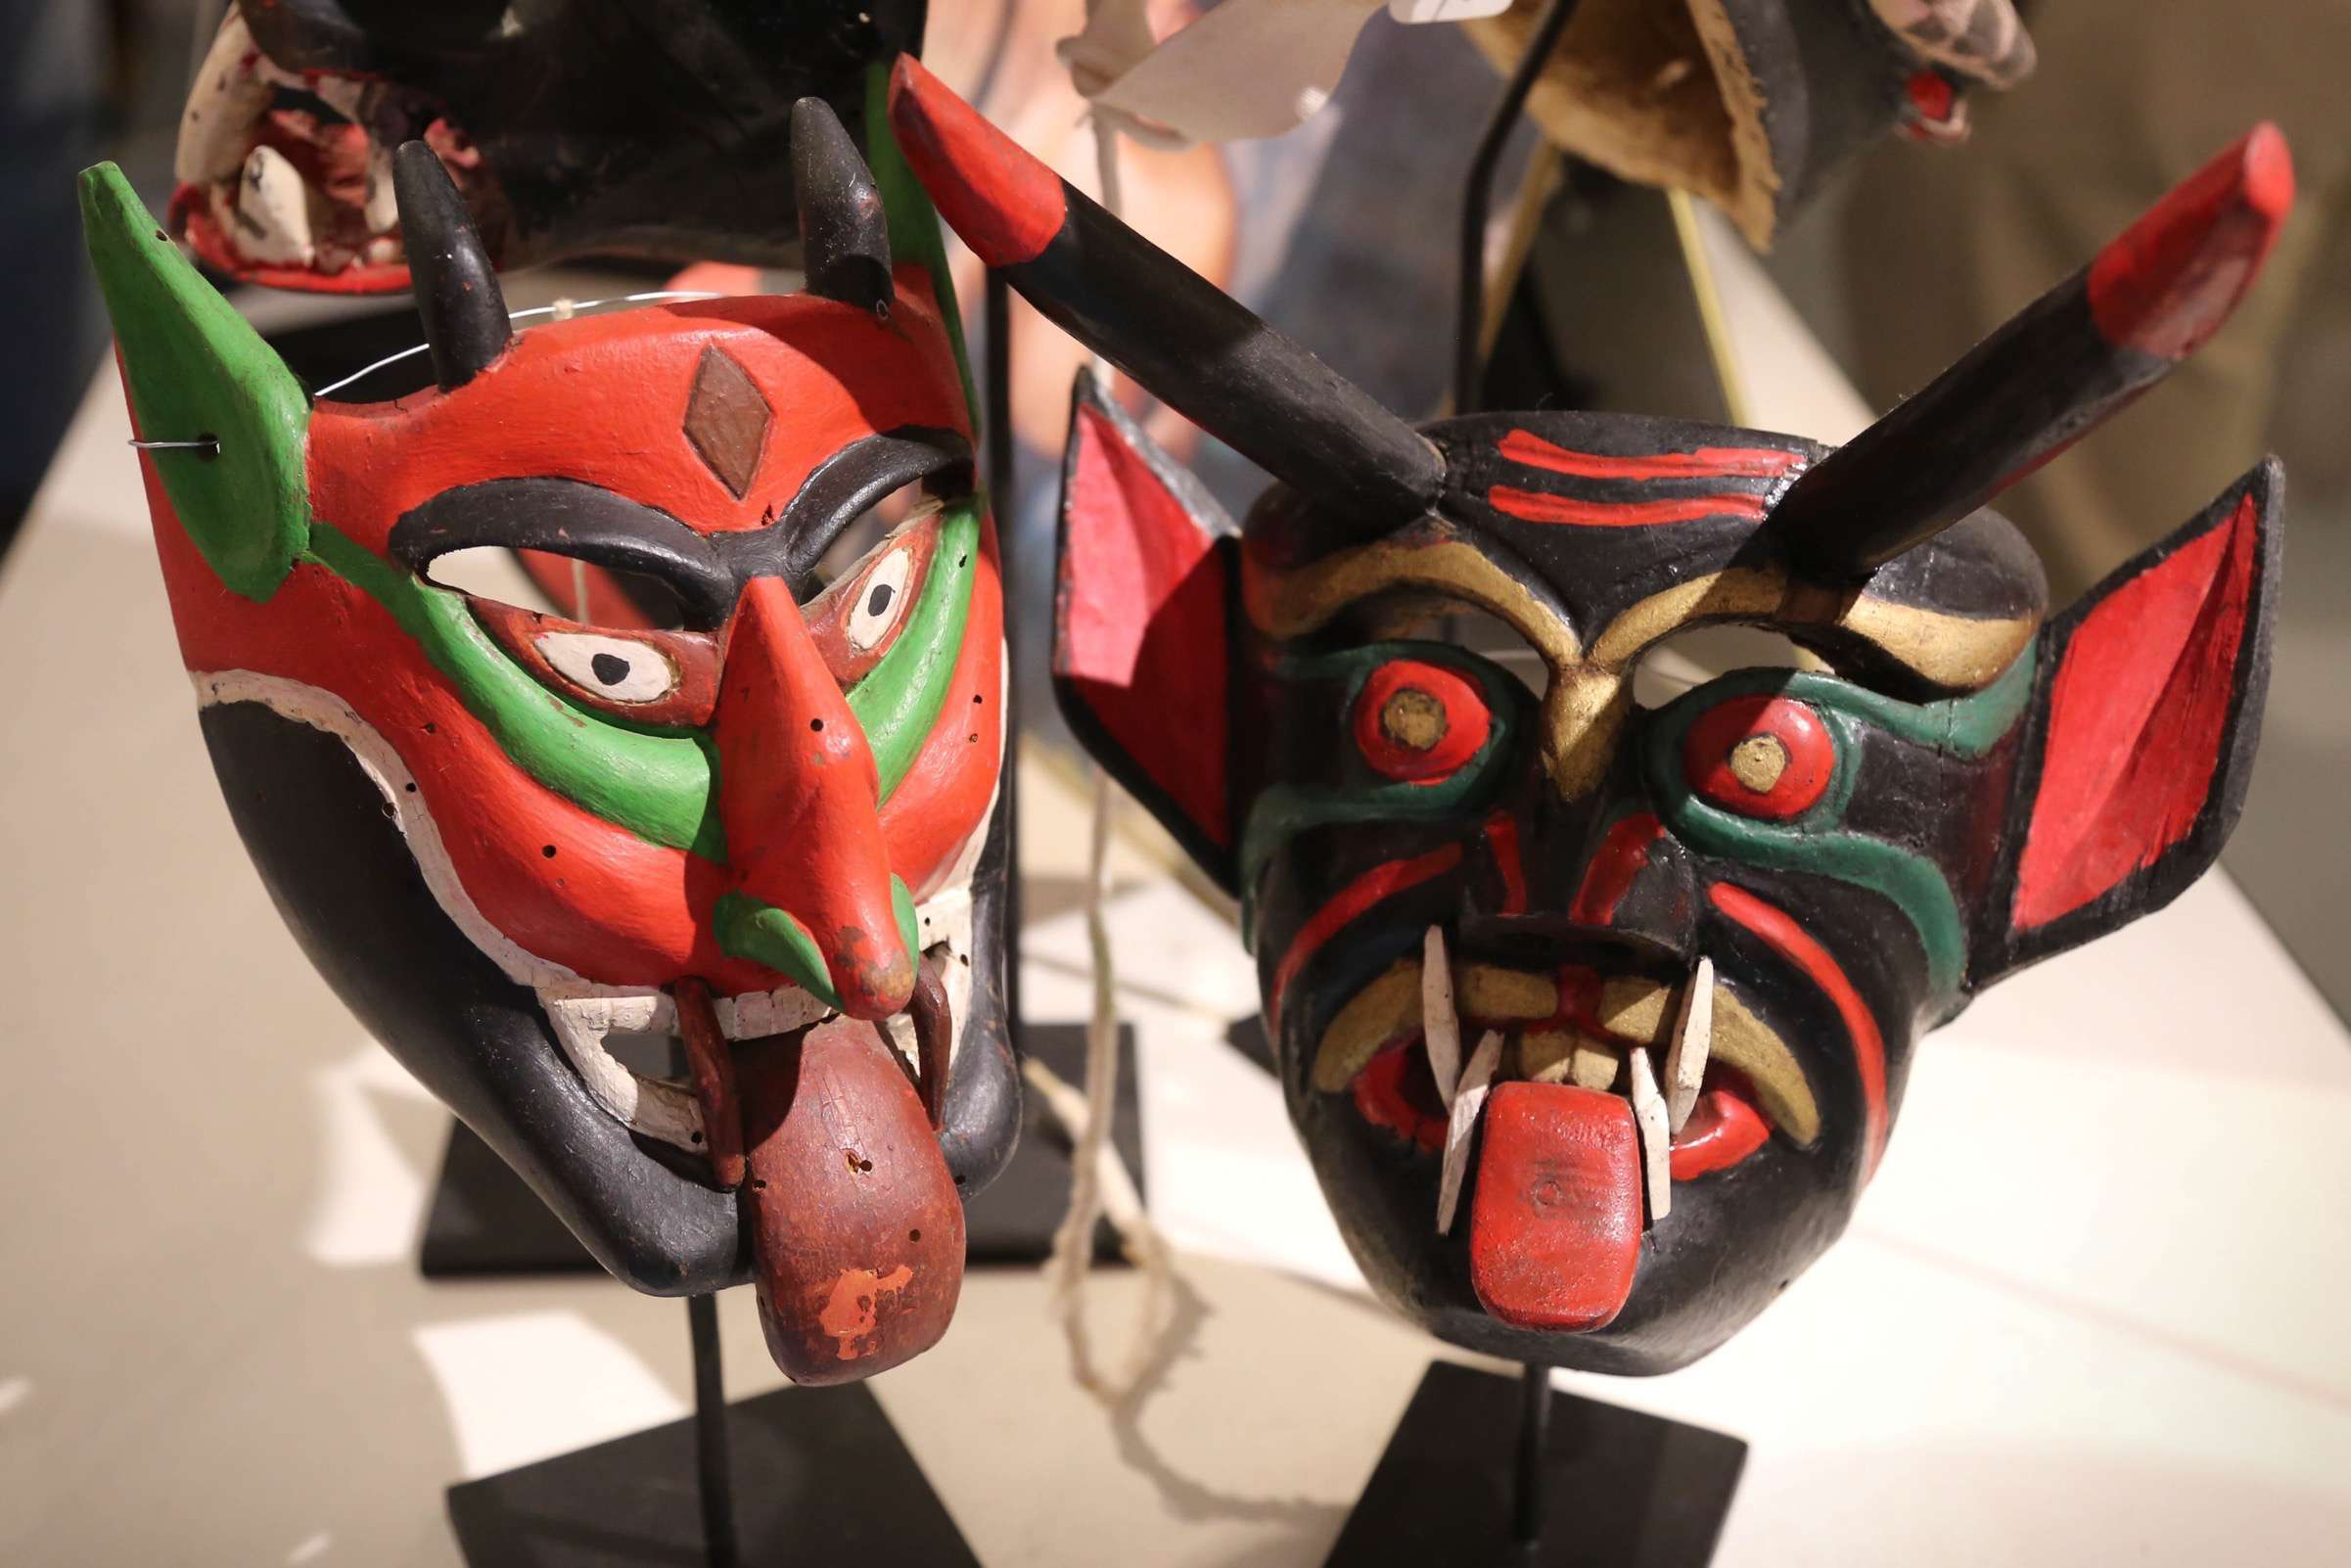 To some, these masks might be frightening, but to others, they represent important aspects of culture and history.